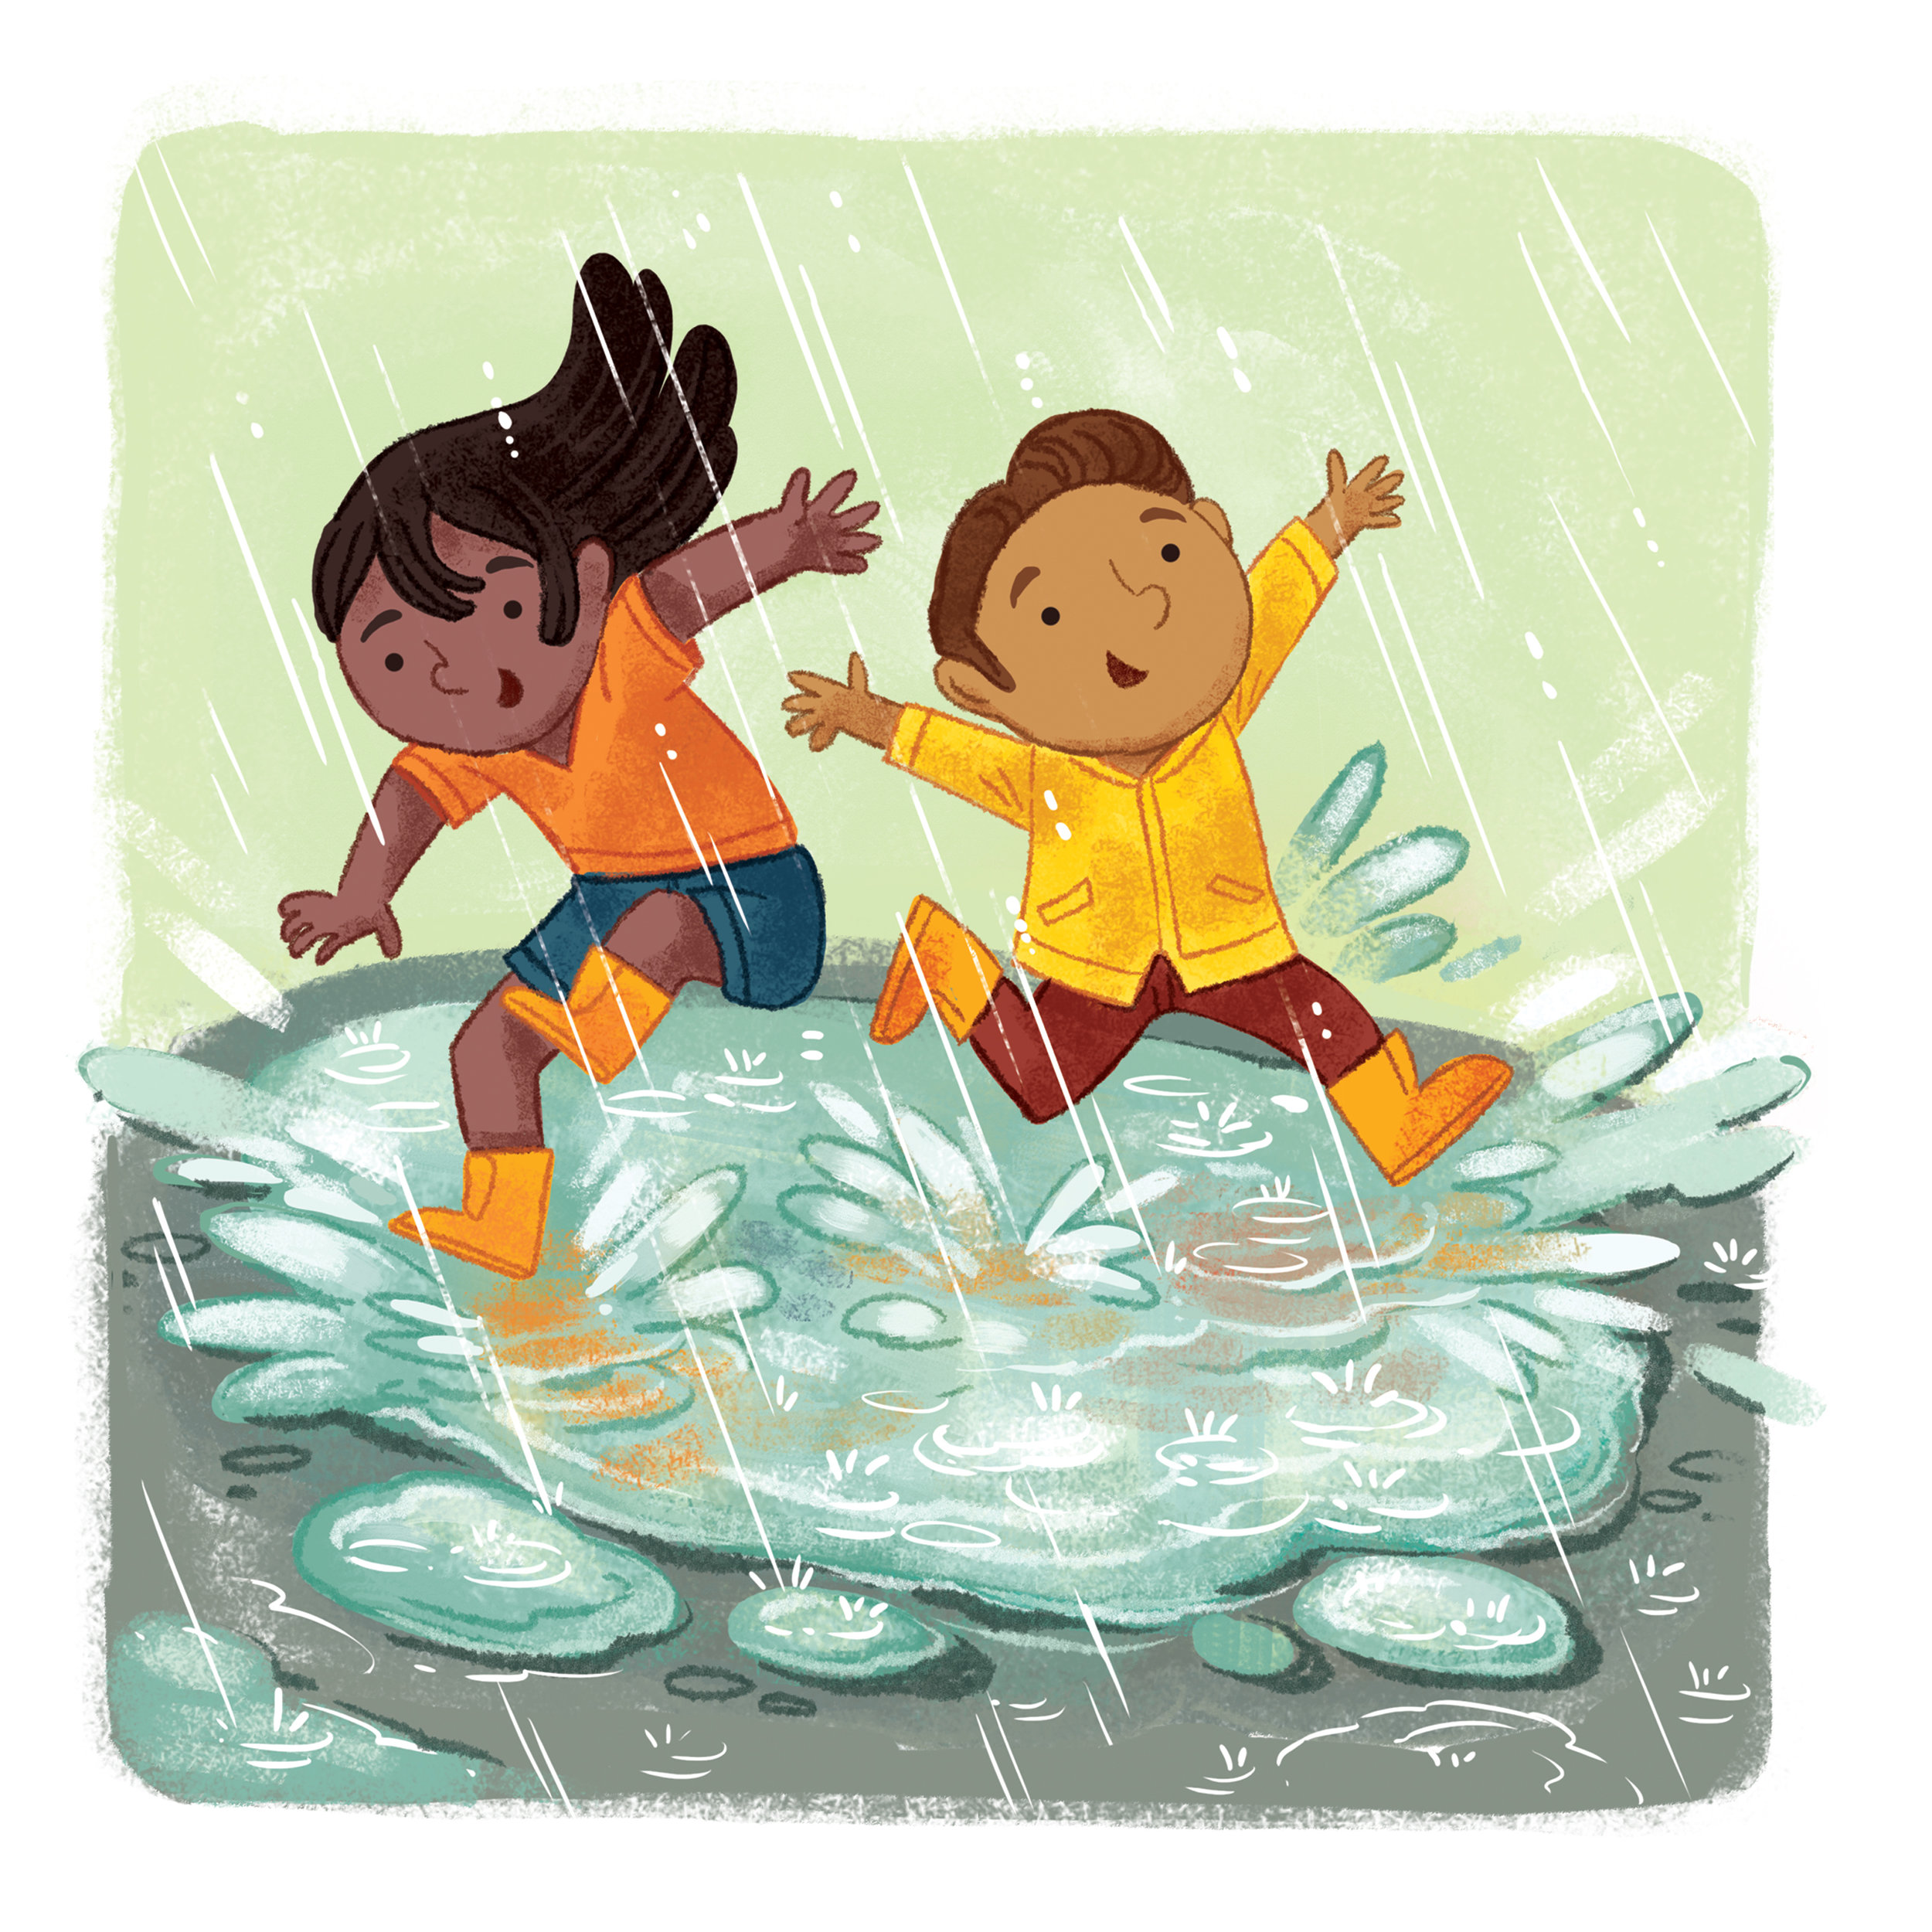 kids_puddle_rain_play.jpg